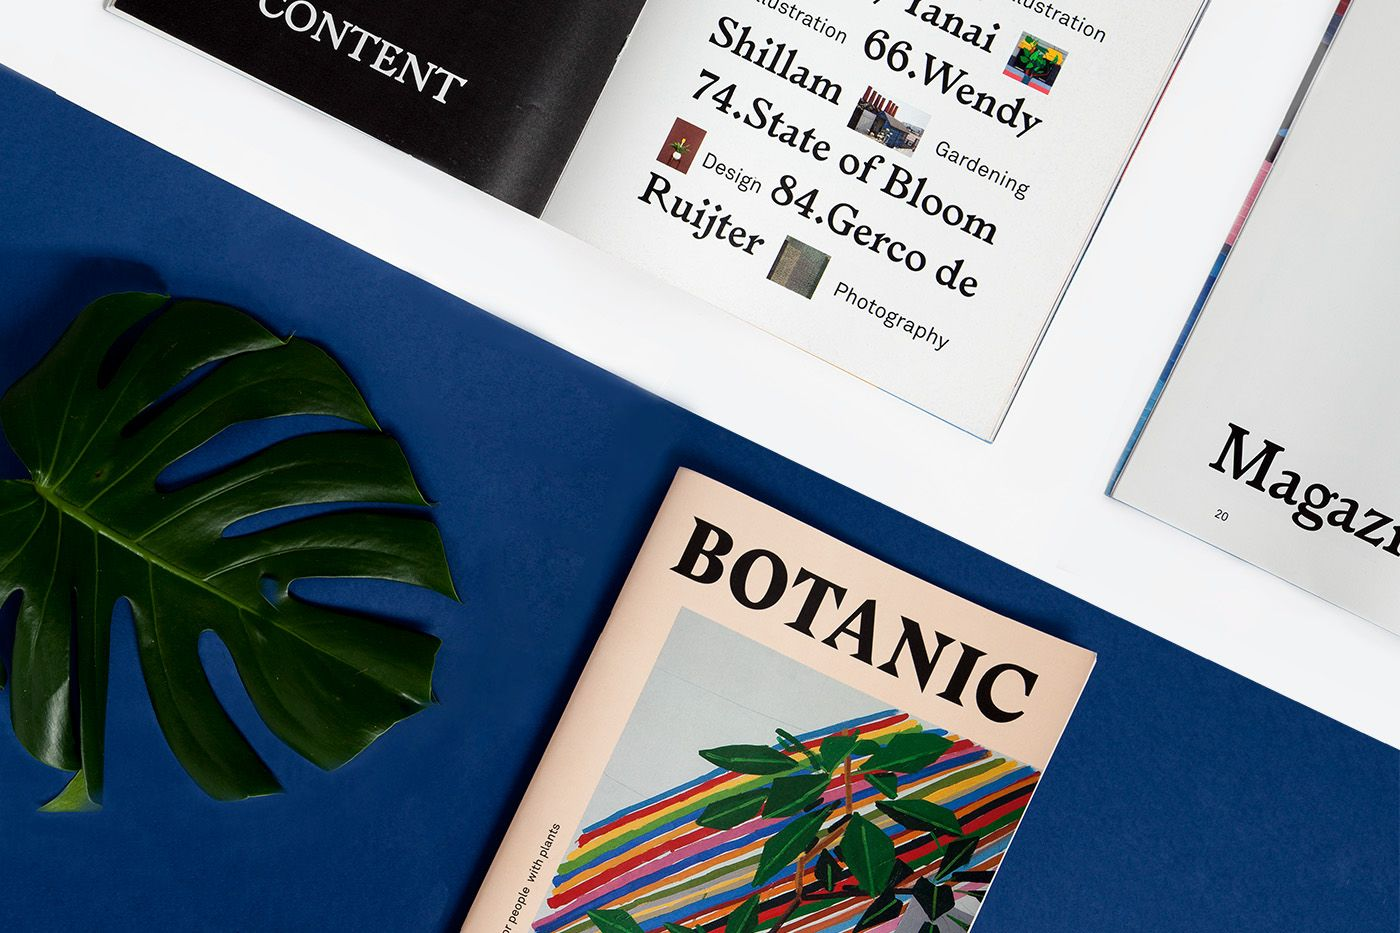 BOTANIC is a new magazine about plants with people or